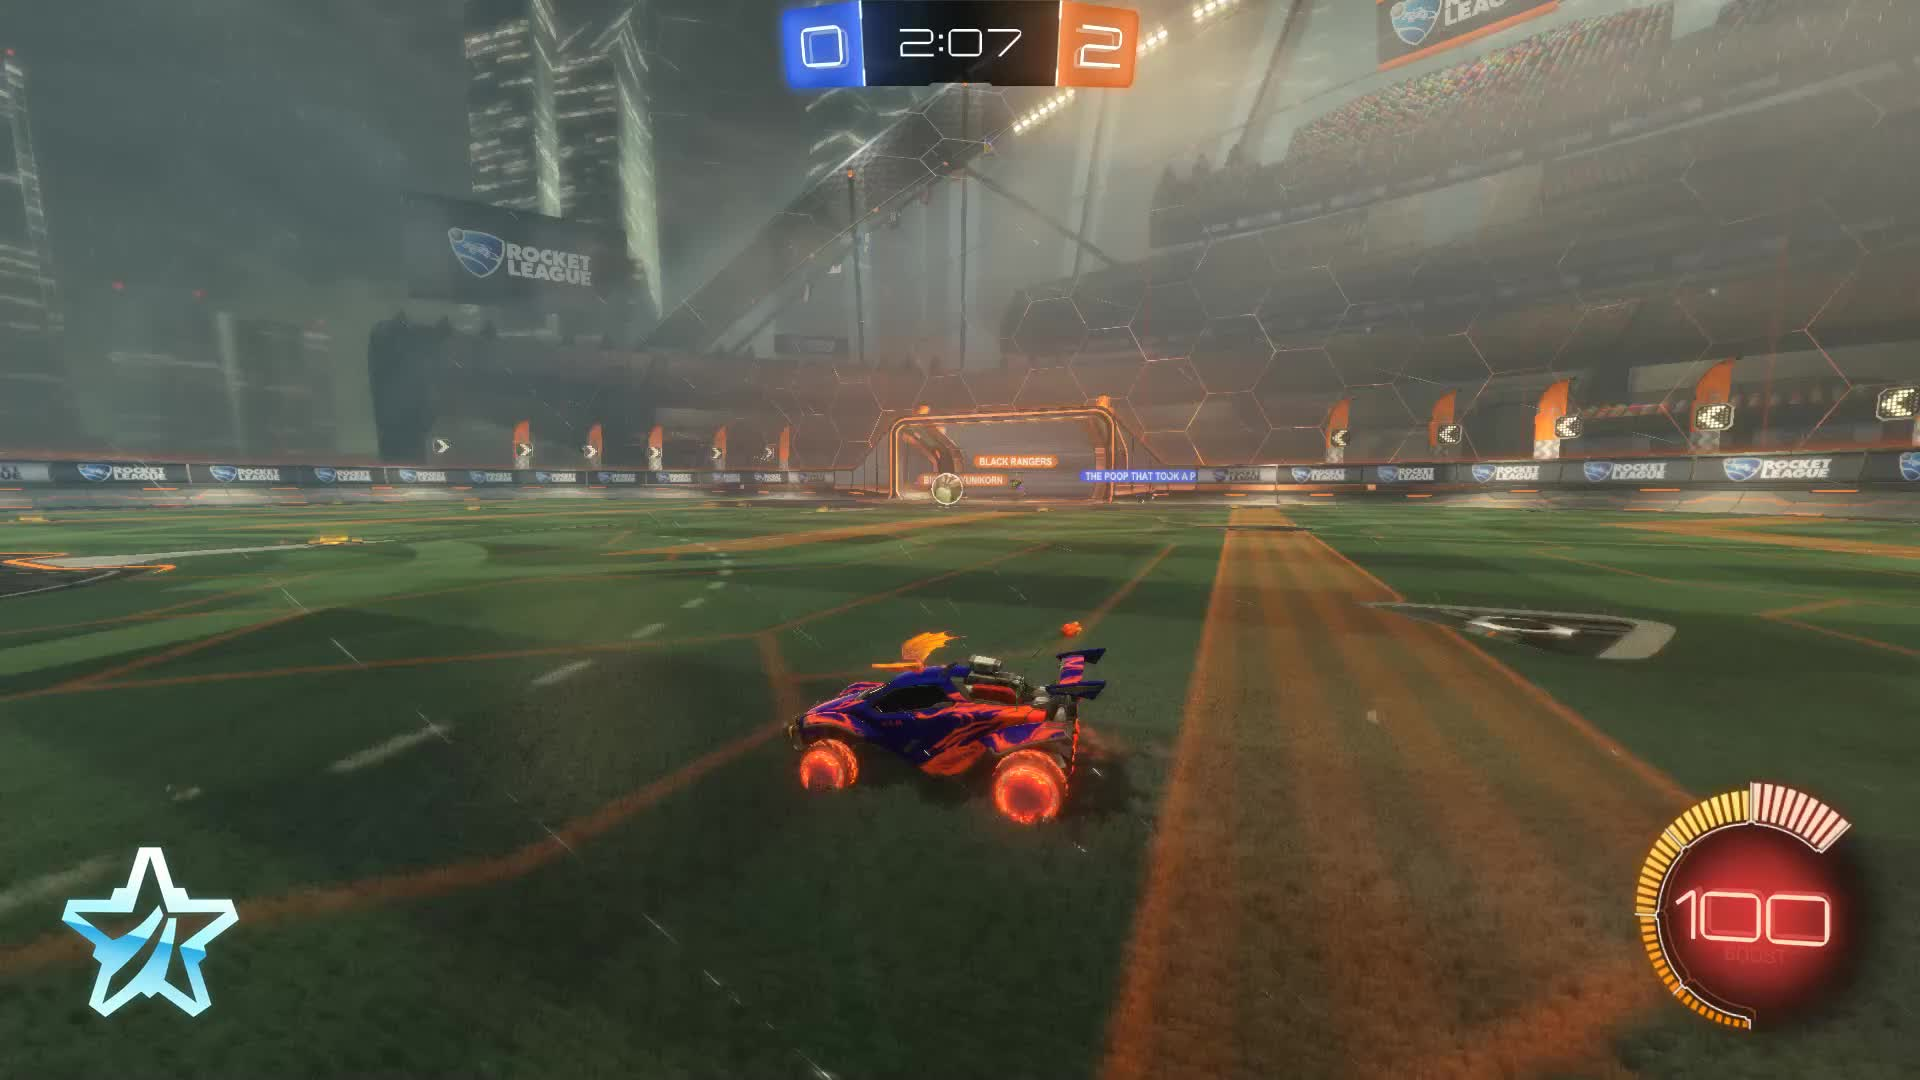 Gif Your Game, GifYourGame, Goal, ItIsK3vin, Rocket League, RocketLeague, ⏱️ Goal 3: ItIsK3vin GIFs